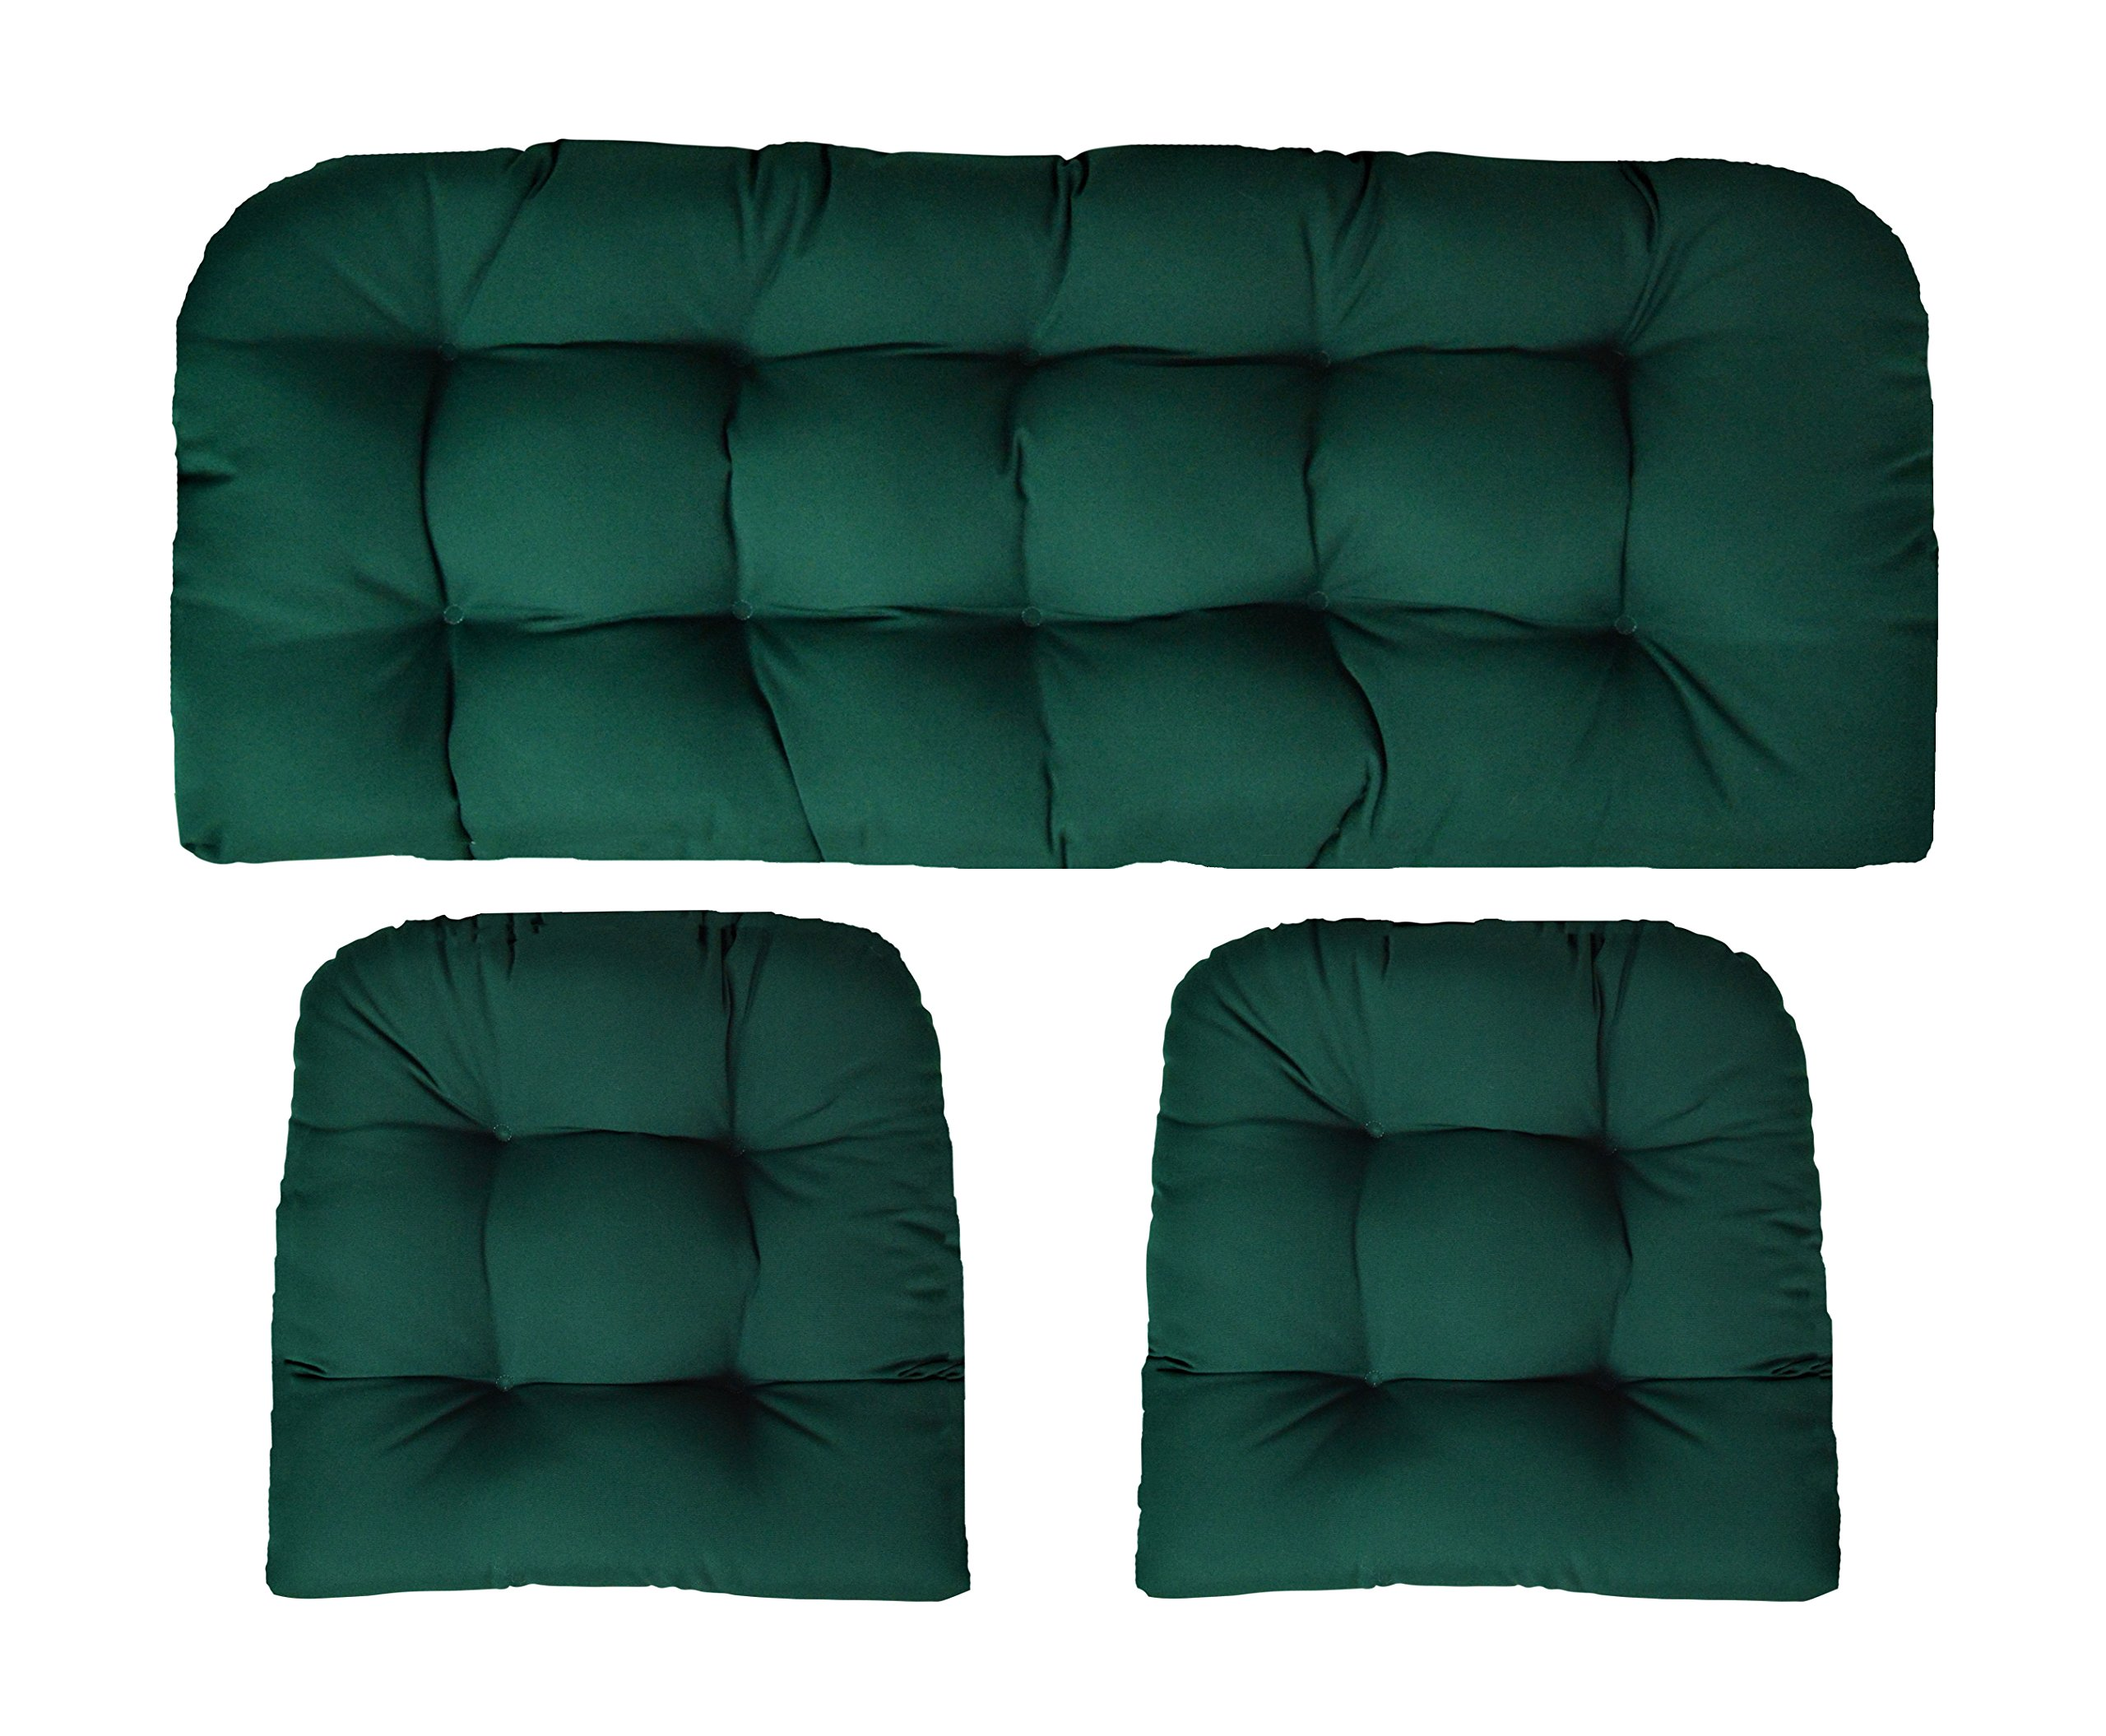 RSH Decor Sunbrella Canvas Forest Green Large 3 Piece Wicker Cushion Set - Indoor/Outdoor Wicker Loveseat Settee & 2 Matching Chair Cushions - Green